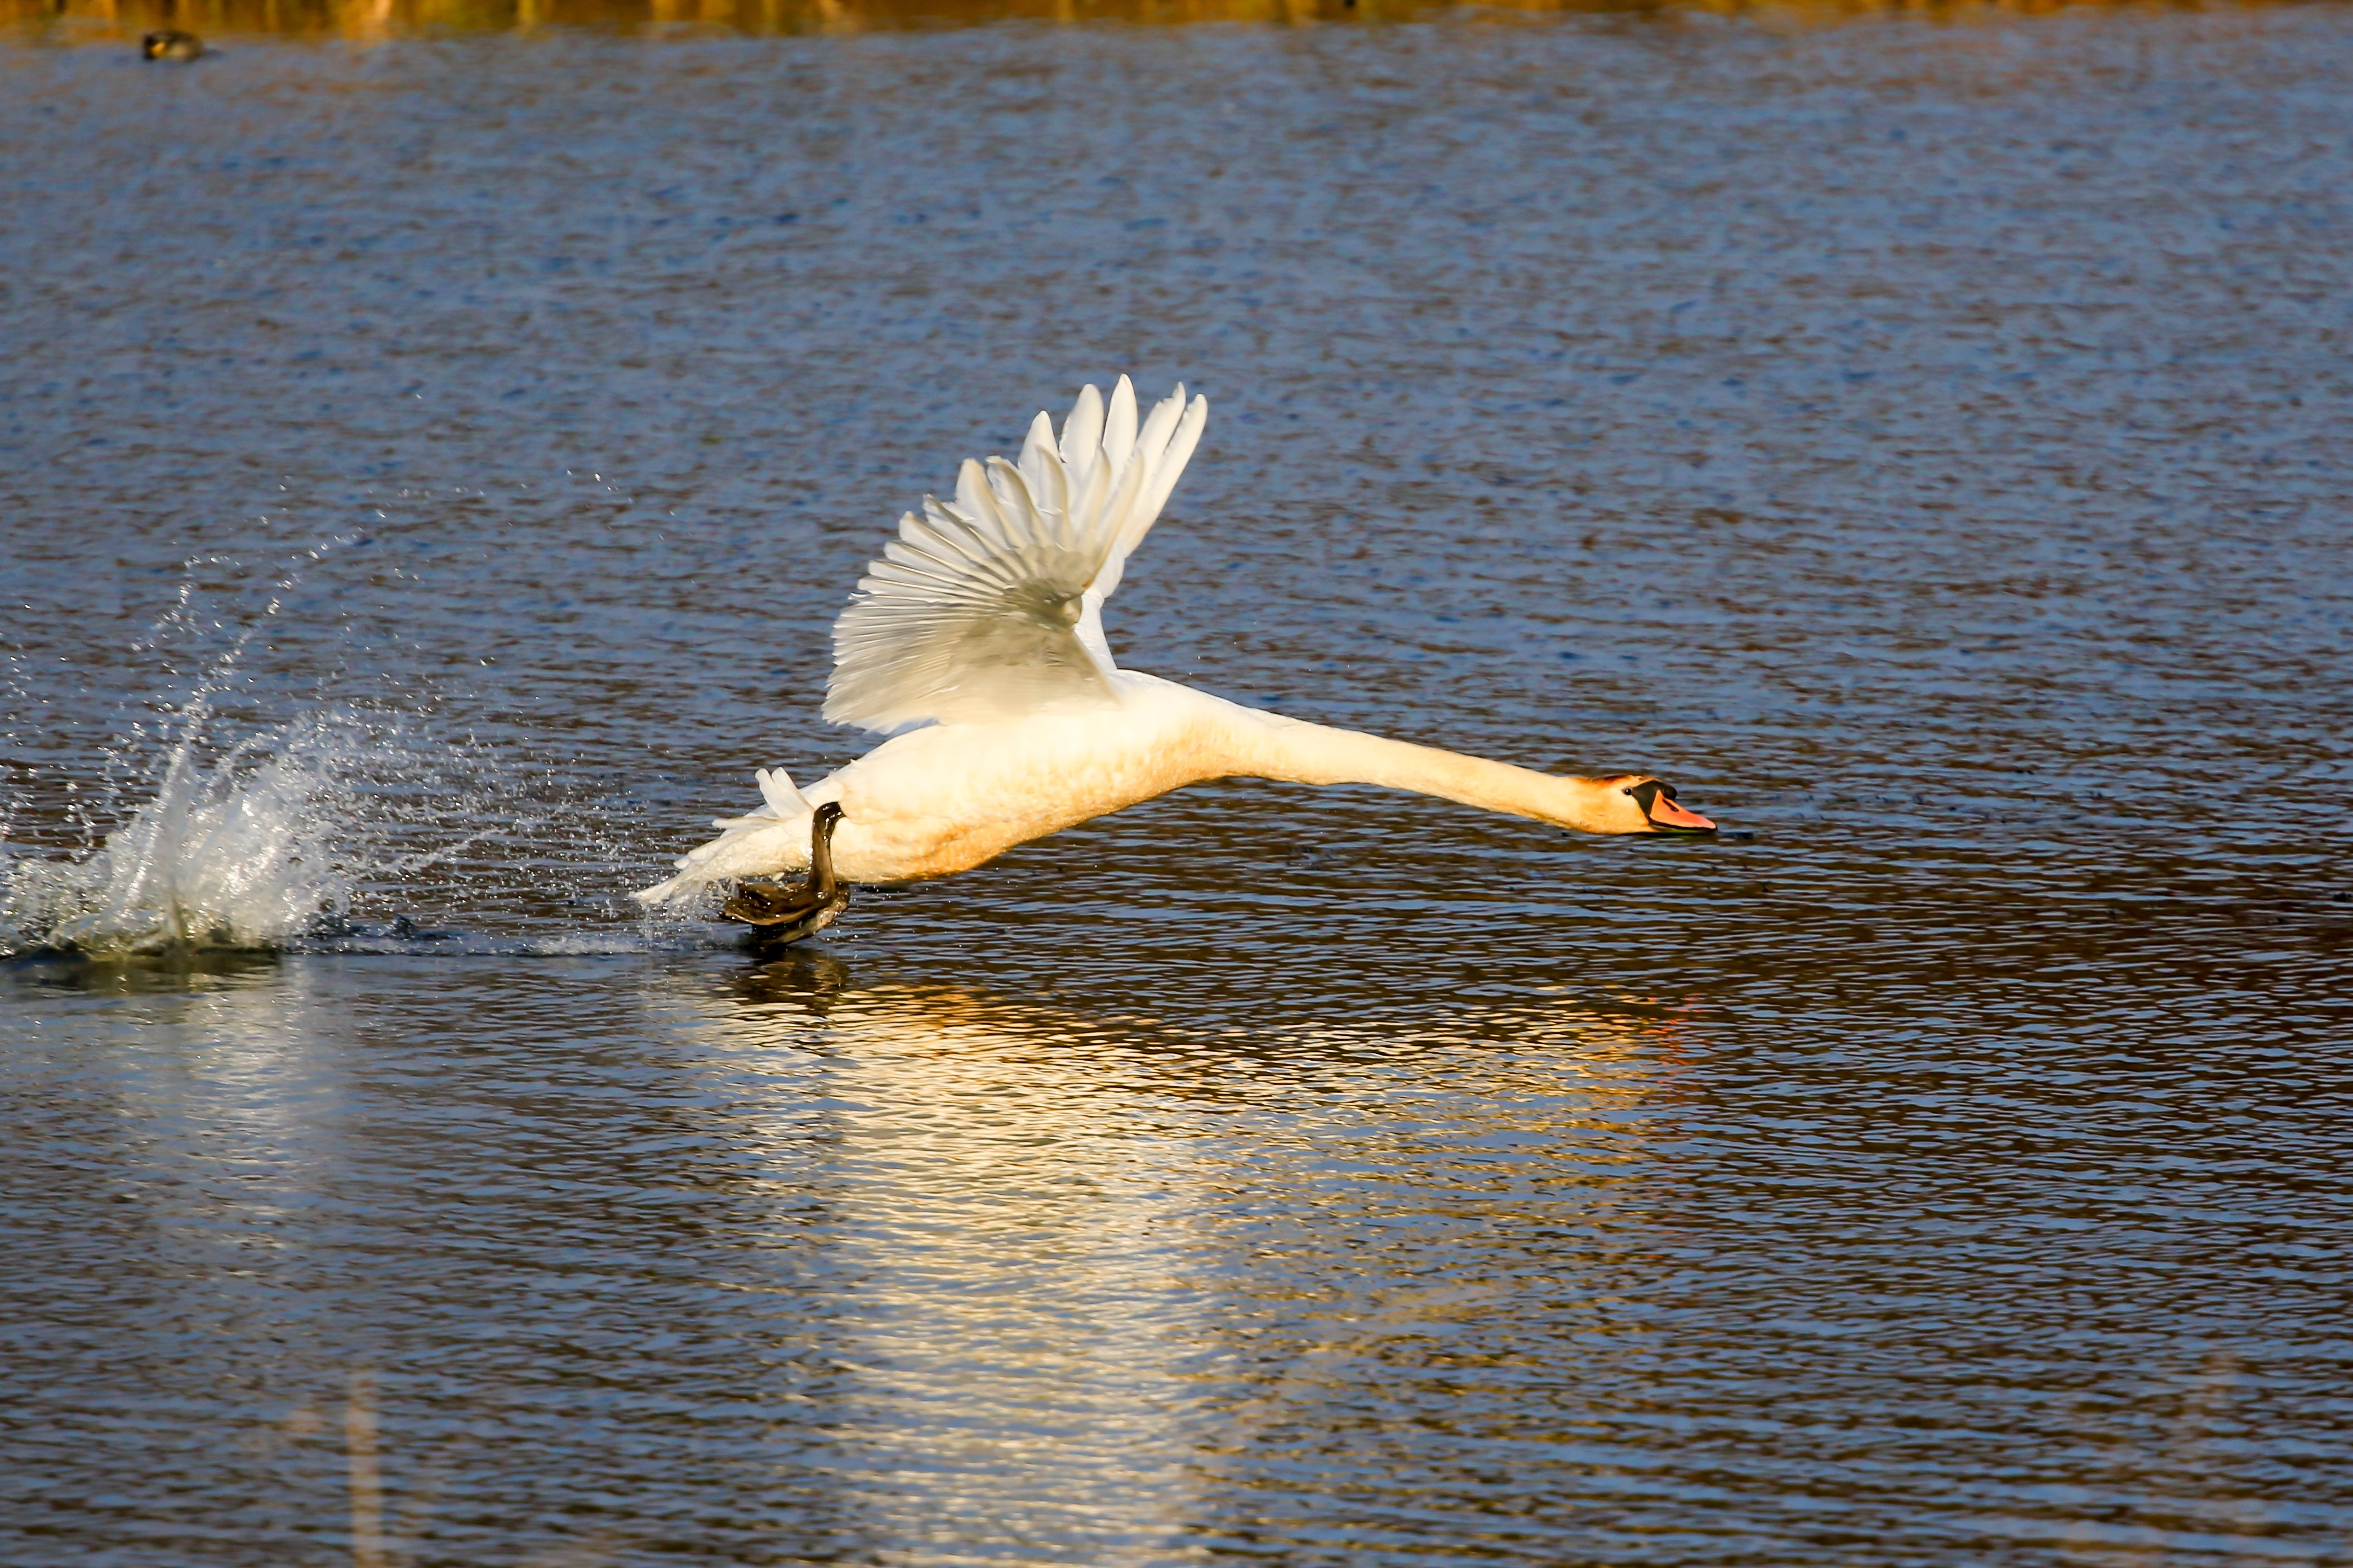 Swan taking off from lake